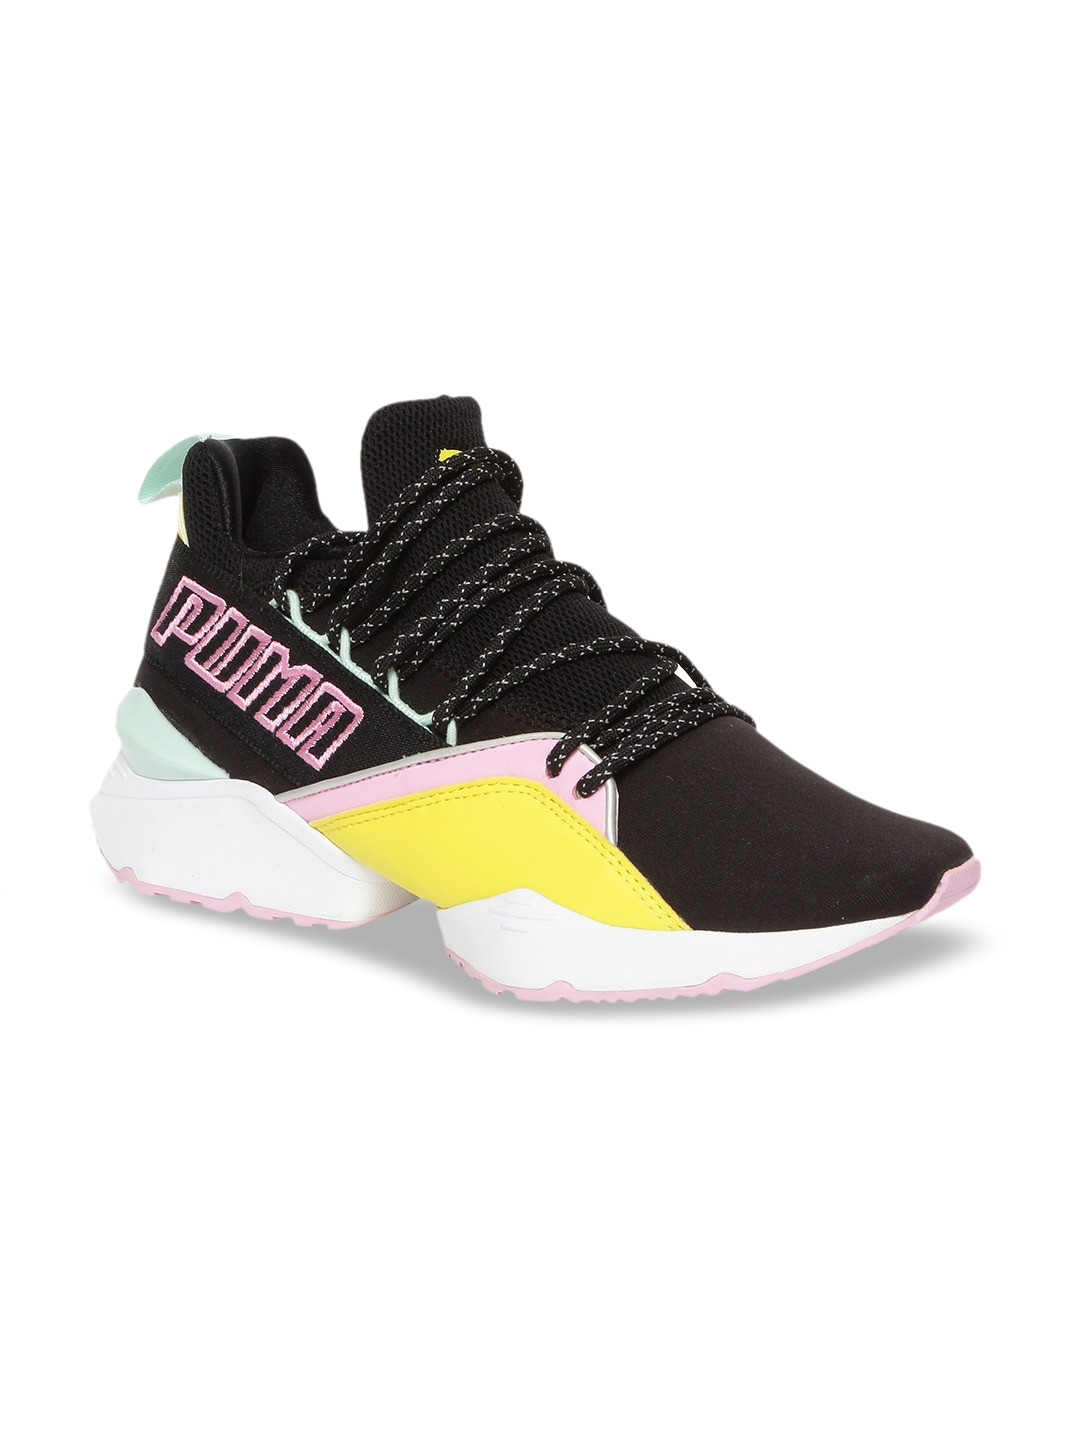 ca2777a4a0827 Puma Women Black & Yellow Muse Maia TZ Wn s Sneakers